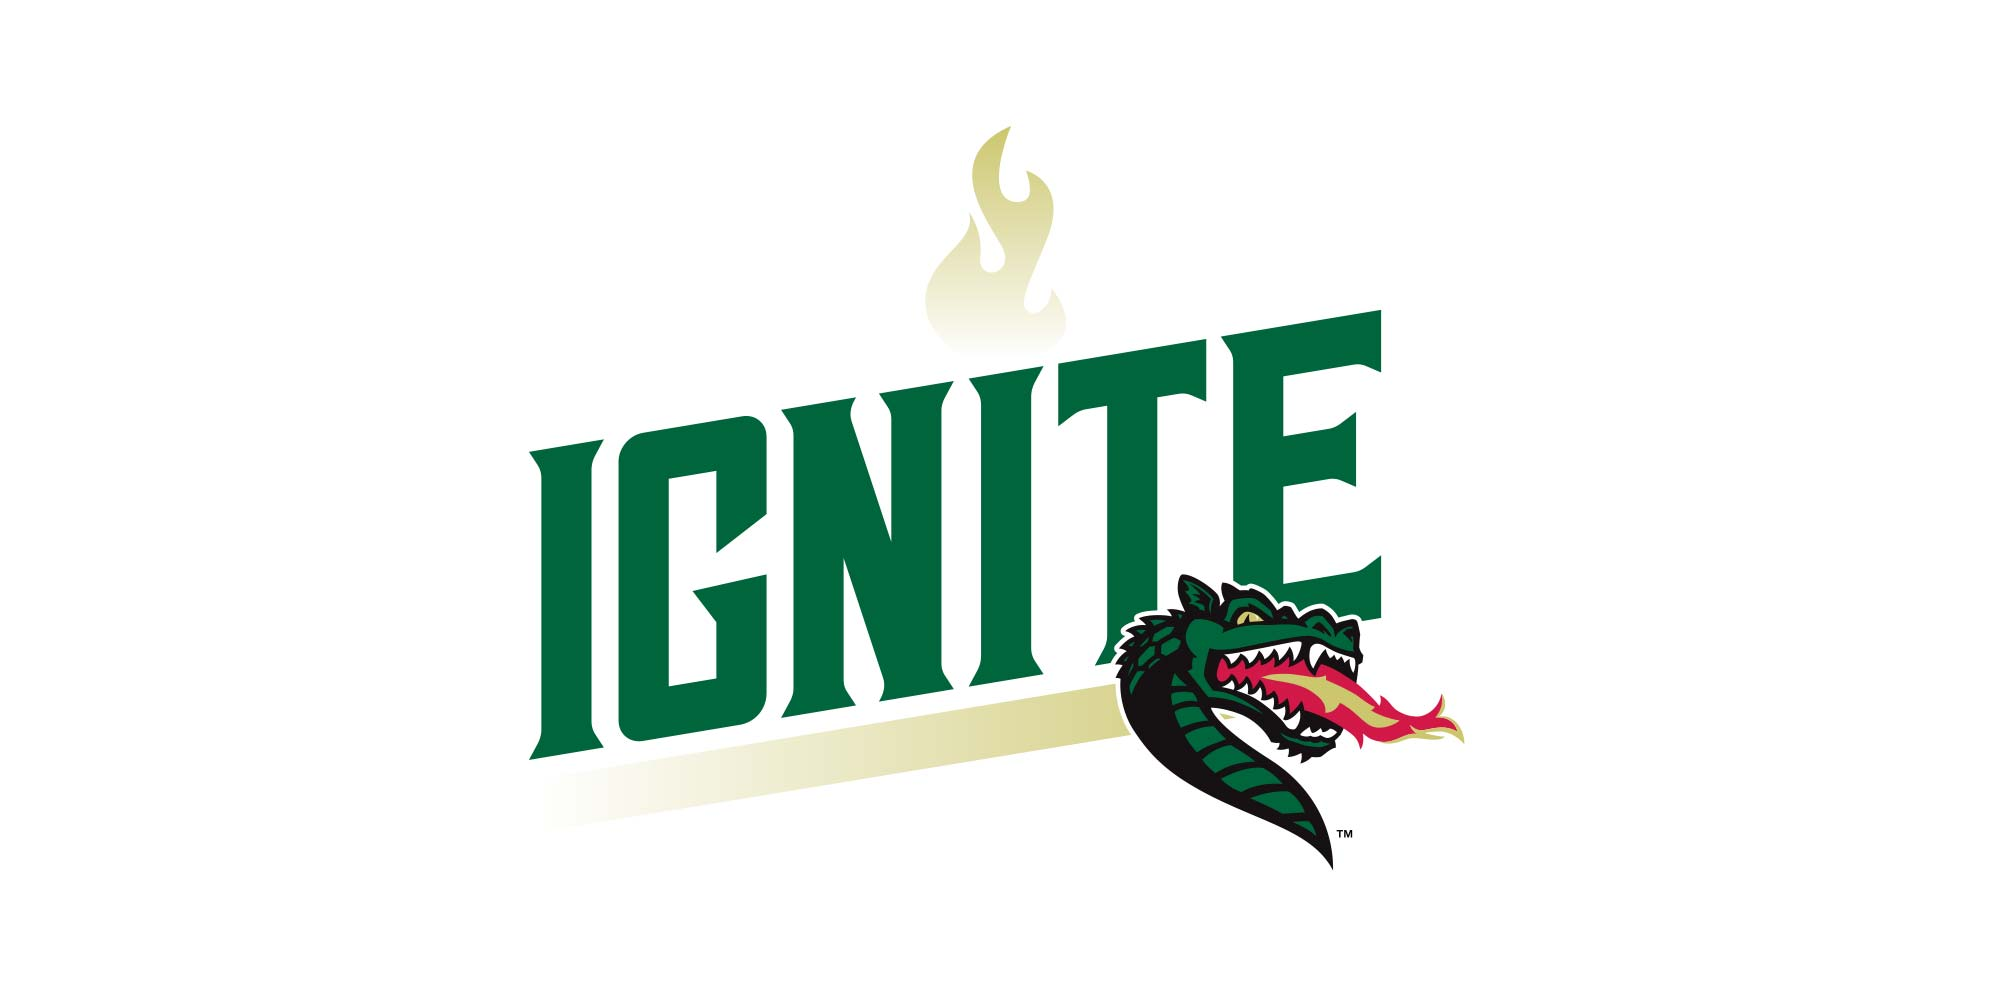 2018 Ignite Campaign Logo<br><span>University of Alabama at Birmingham</span>